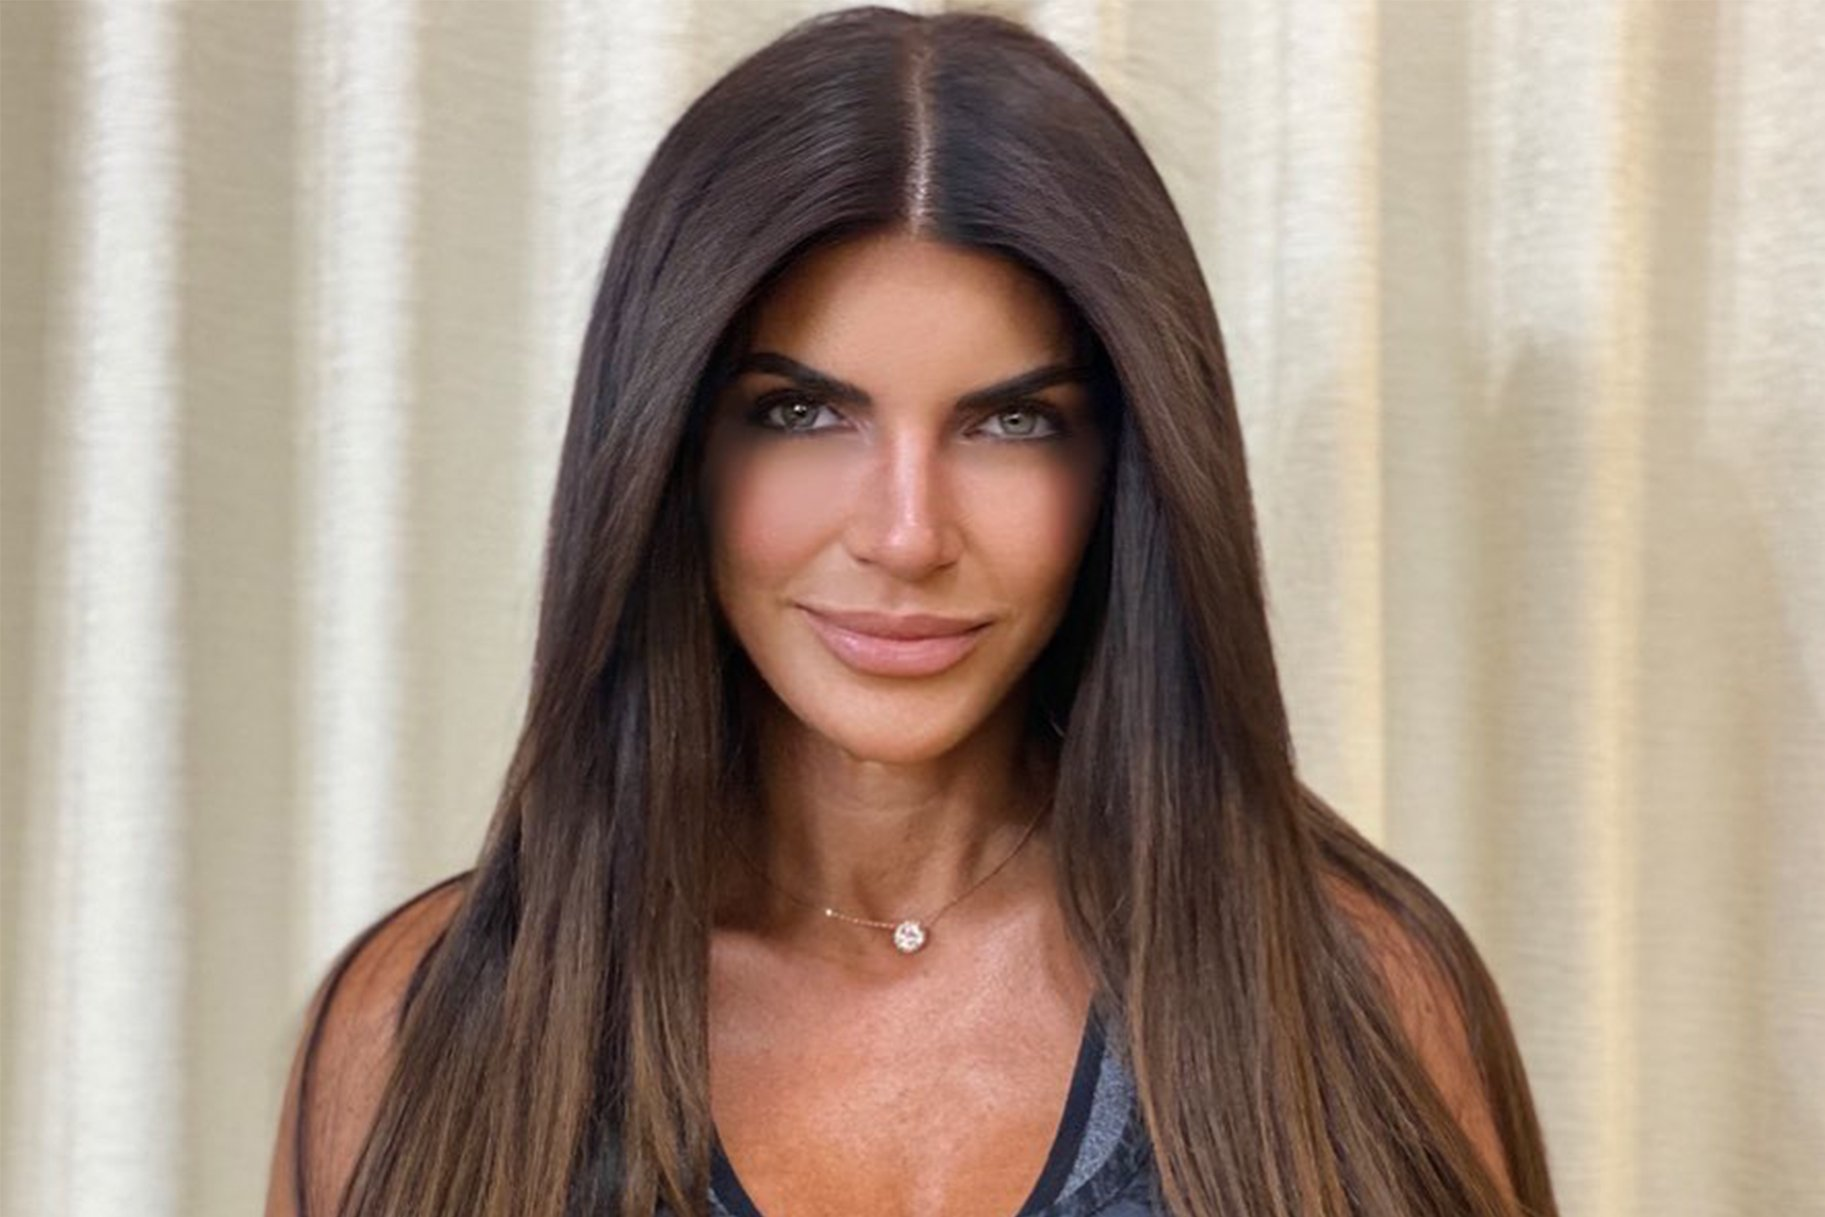 Teresa Giudice To Be The Main Focus Of RHONJ's Season 11, Source Says – Details!